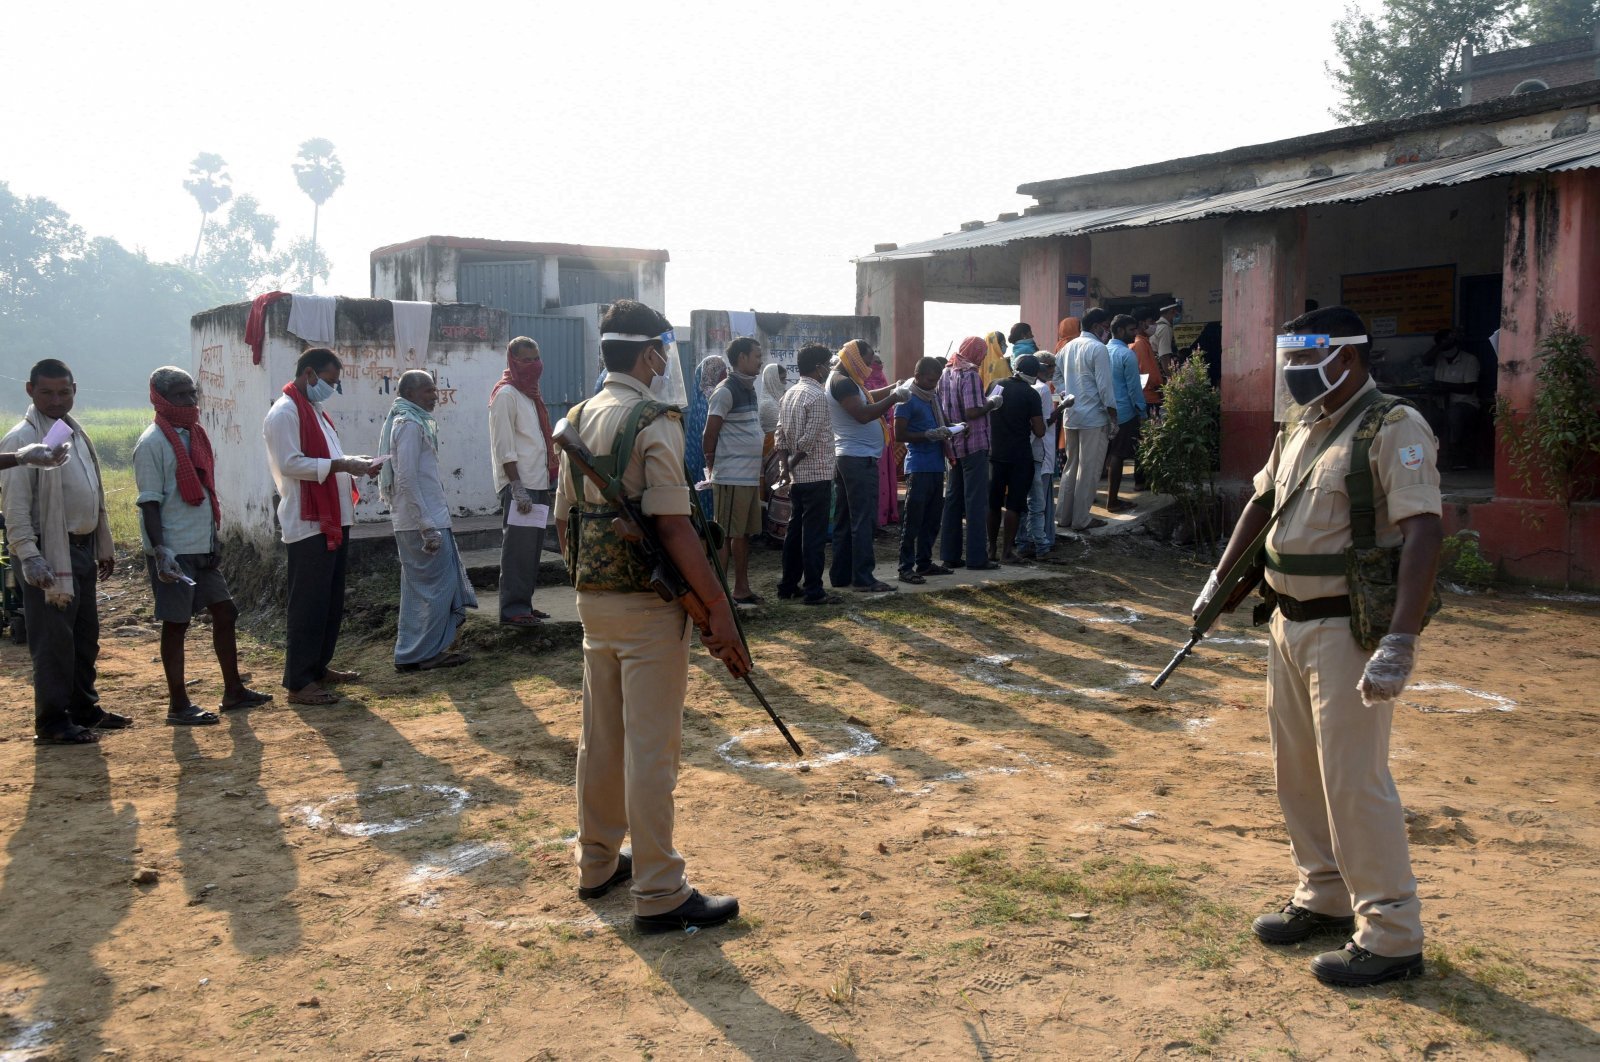 Policemen wearing protective face shields stand guard as voters stand in a queue to cast their vote outside a polling booth at a village on the outskirts of Patna in the eastern state of Bihar, India, Oct. 28, 2020. (REUTERS Photo)